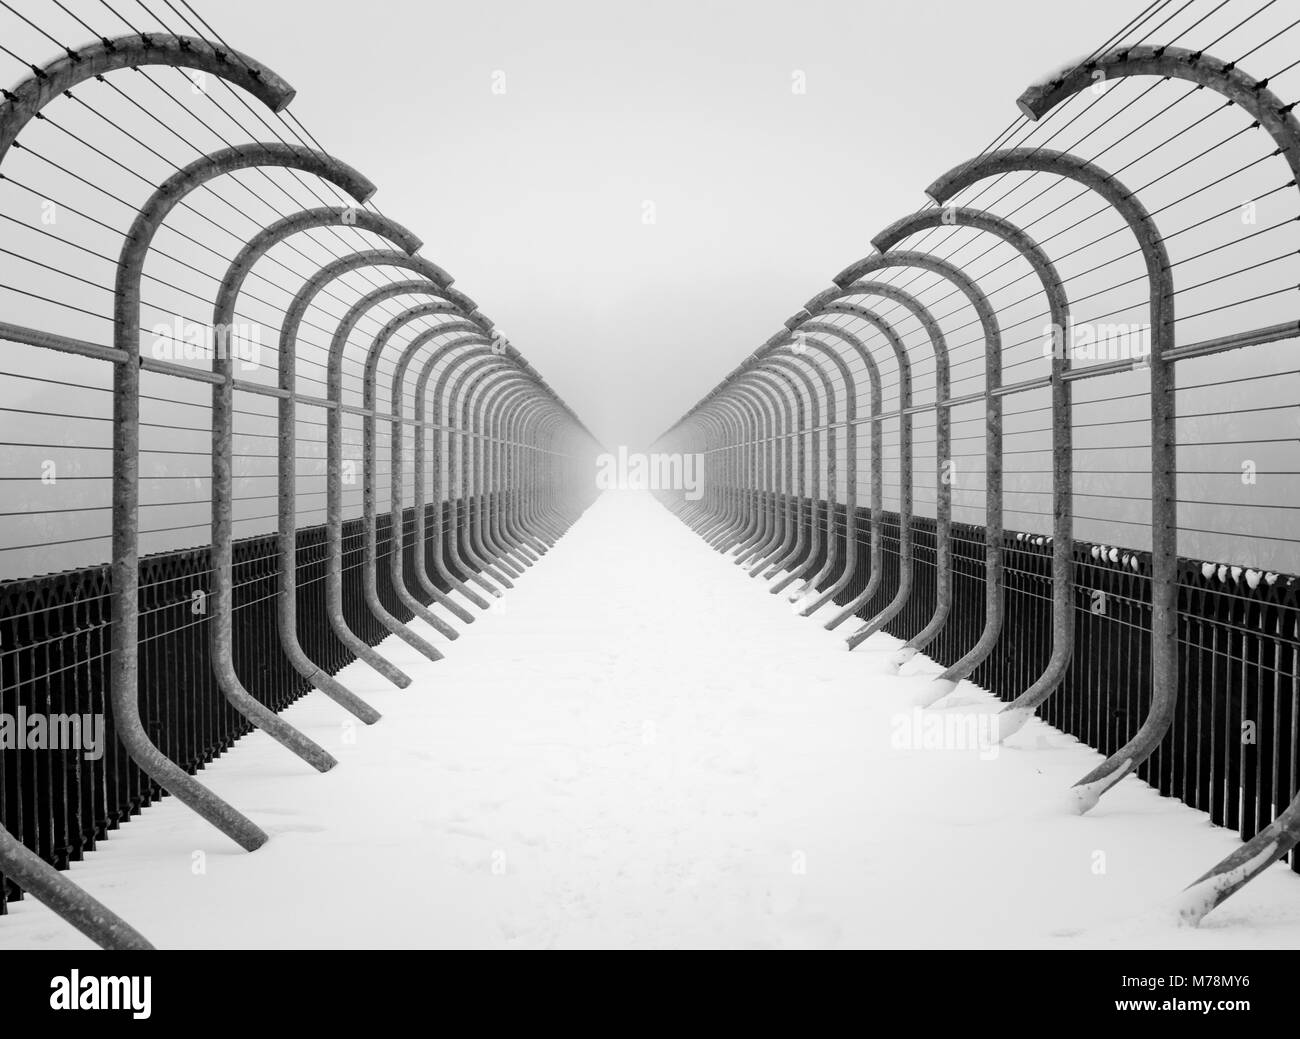 Tunnel like perspective view of anti suicide barriers on bridge in misty winter landscape minimalist snow scene - Stock Image